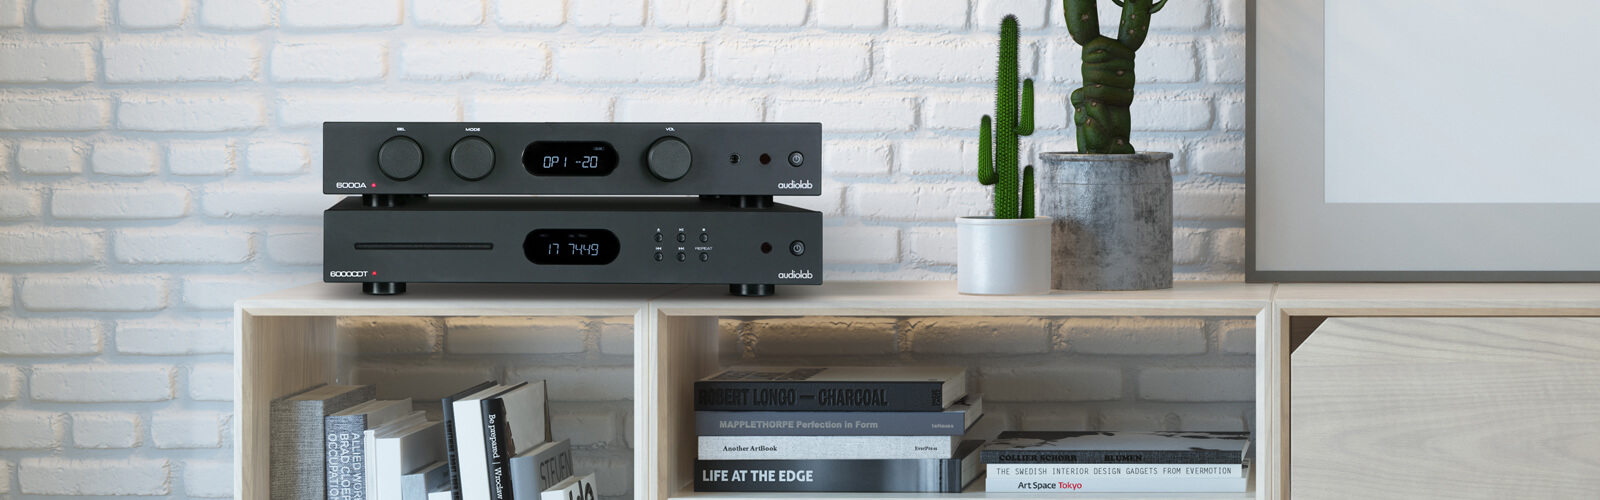 shelf stereo components for consumer electronics